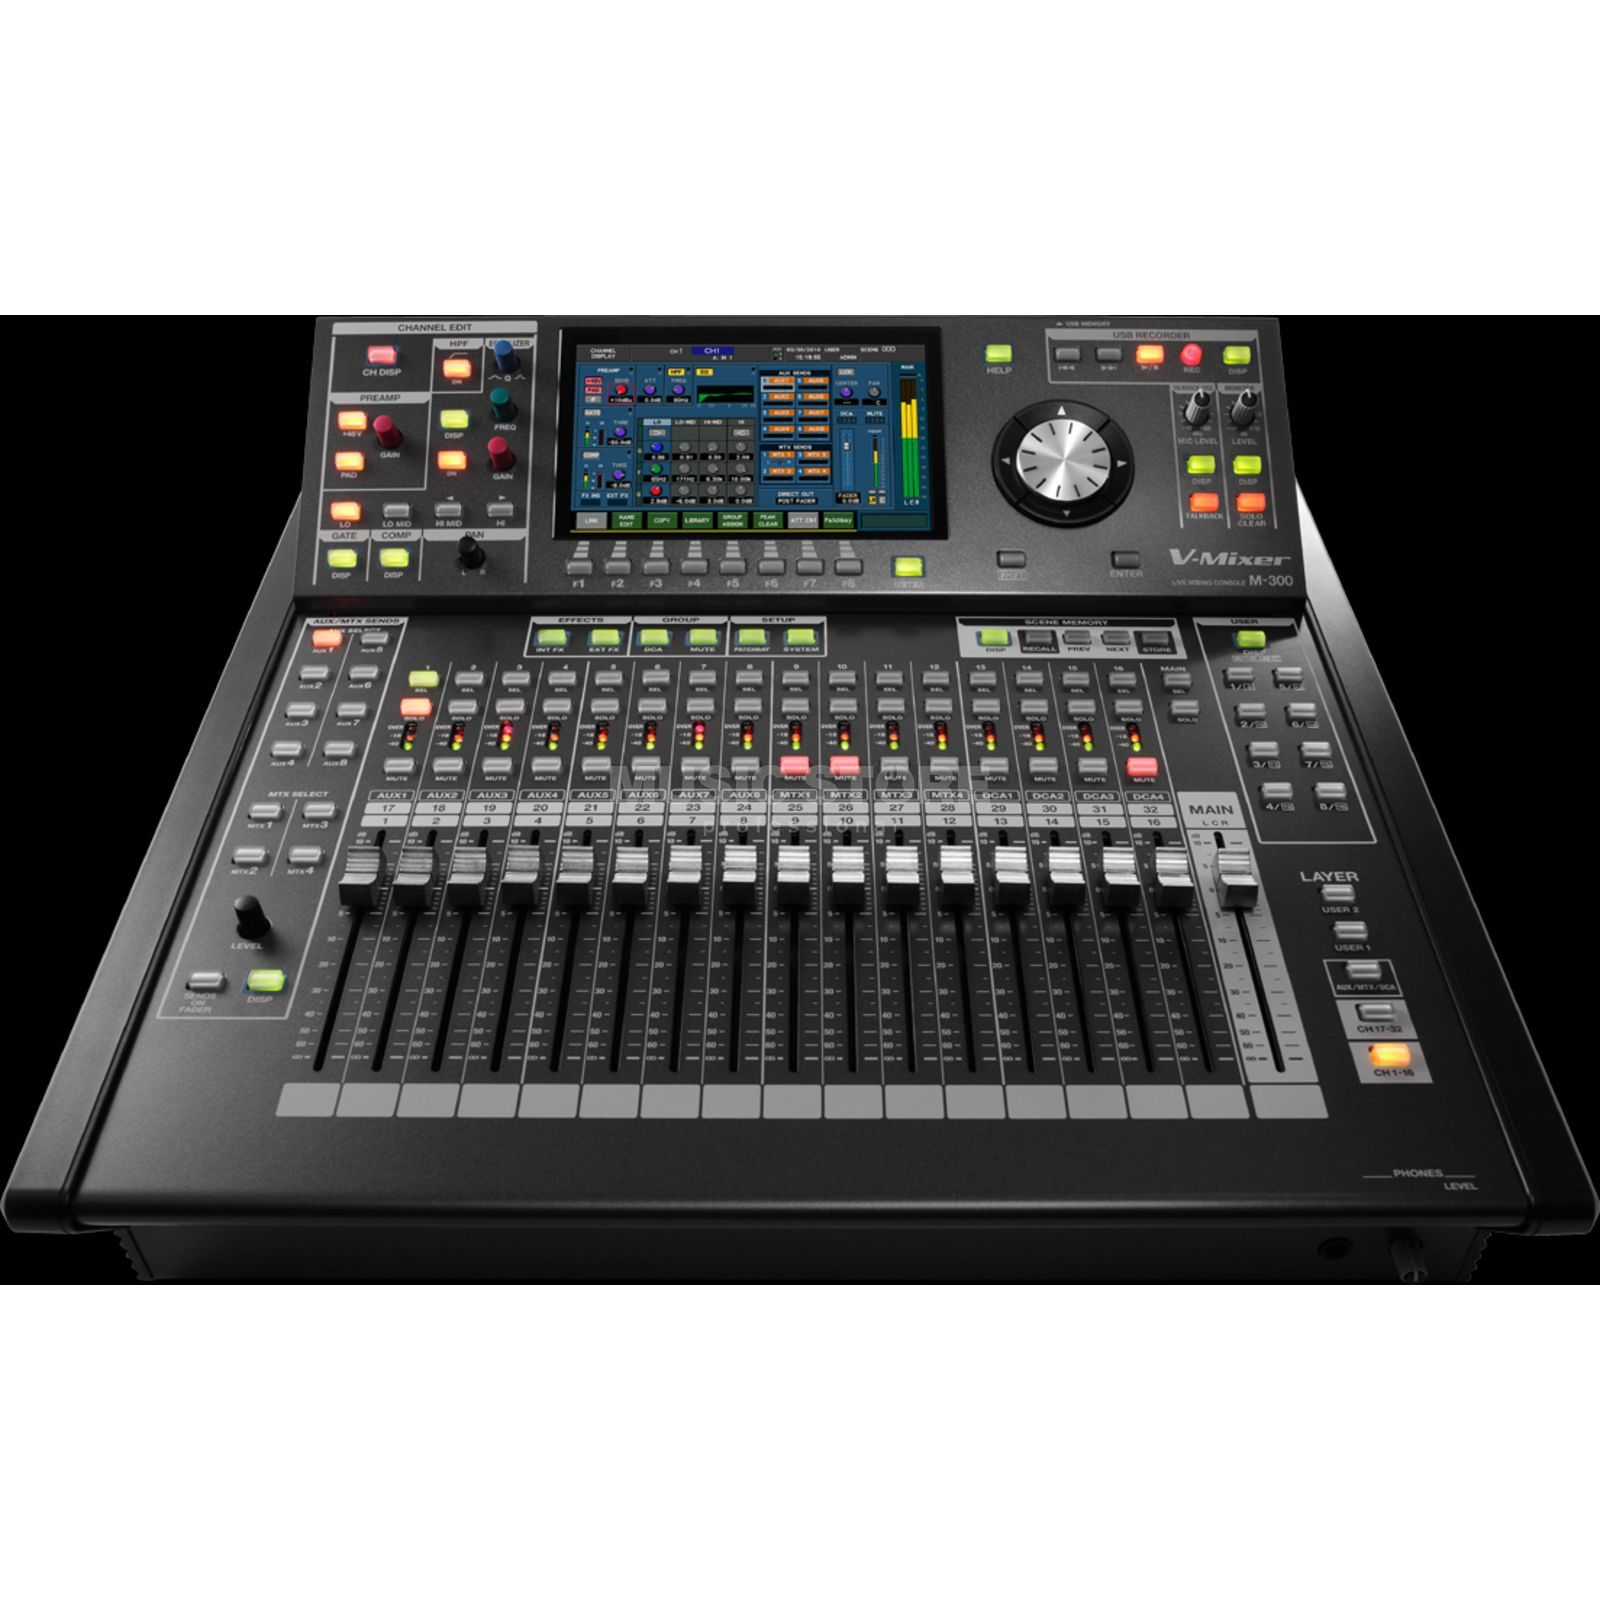 Roland M-300 V-Mixer 32 Channel Digital Mixer Produktbillede